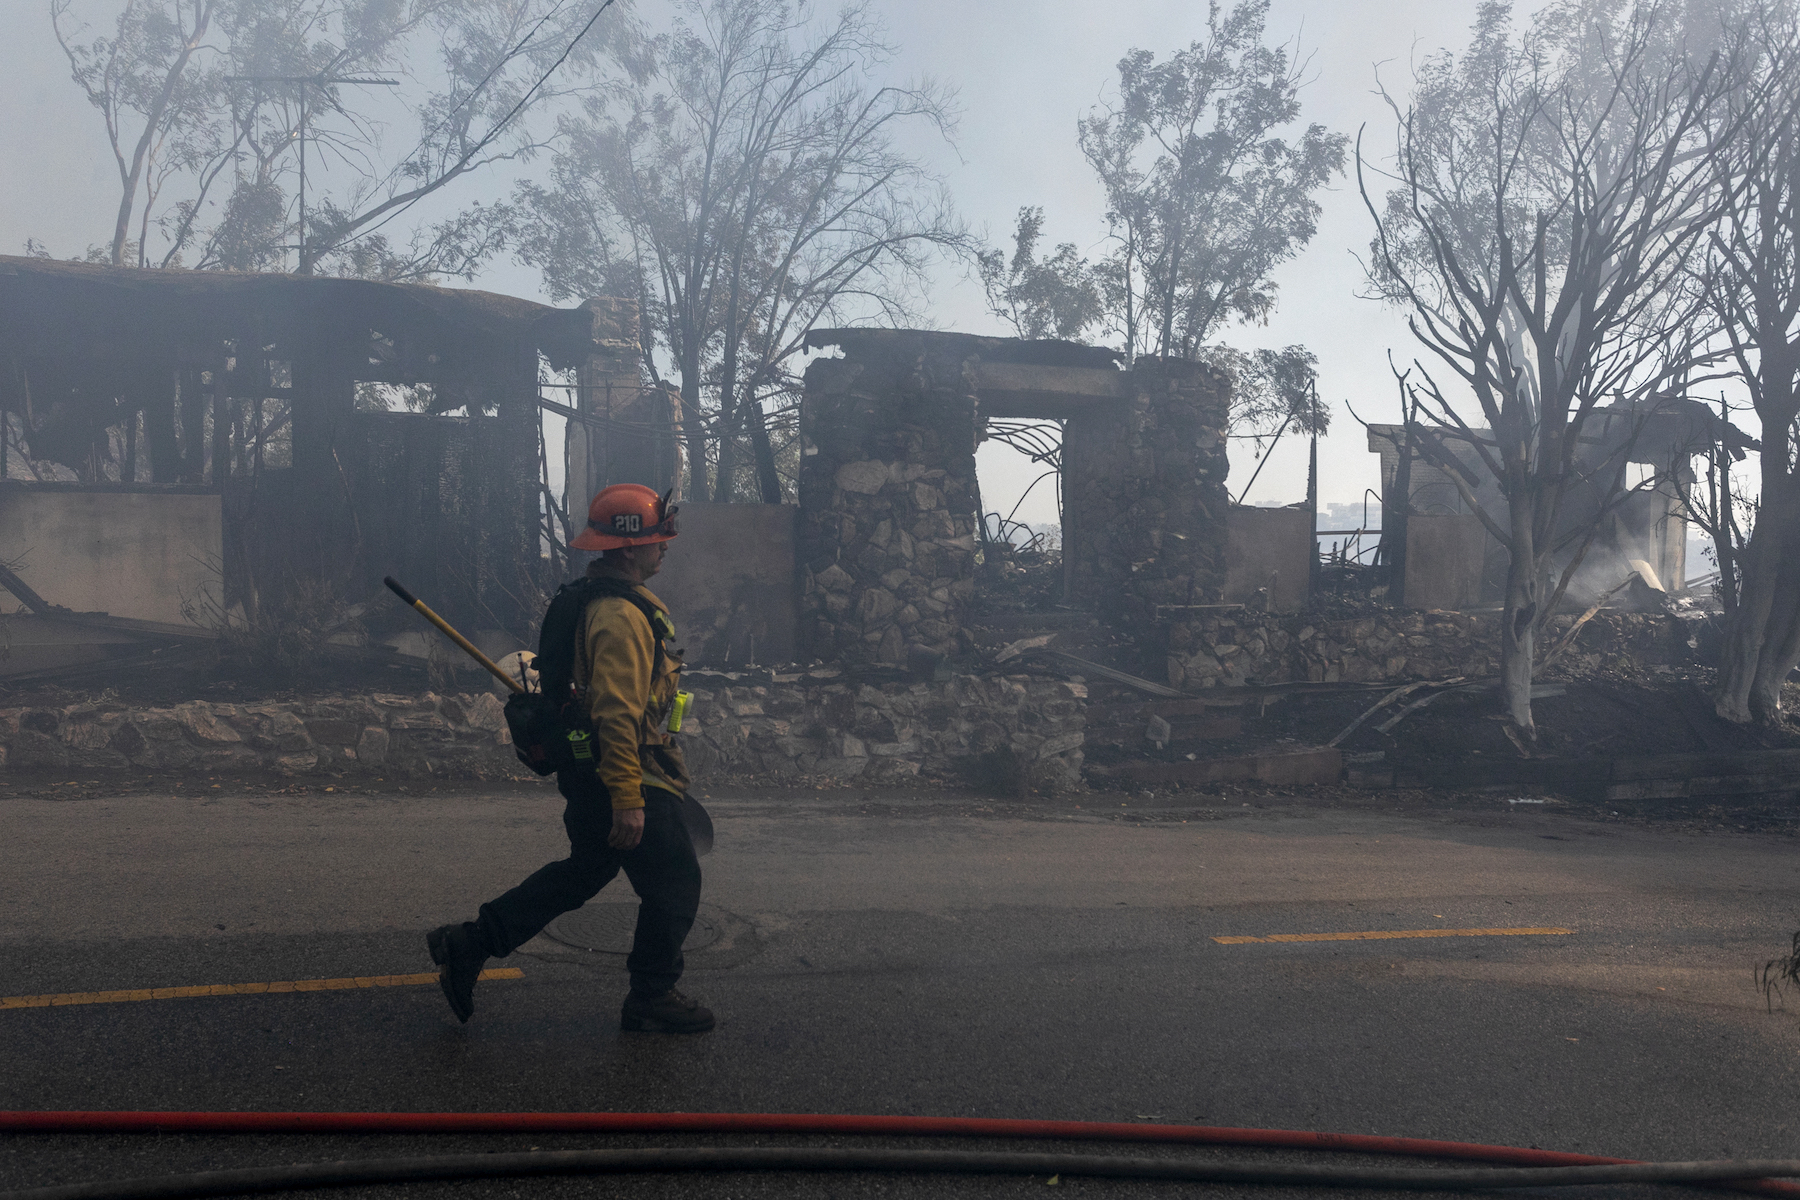 A firefighter wearing a yellow vest, orange helmet and black pants walks past burned houses in Los Angeles. In the background, against the blue sky, semi-burnt trees are visible.